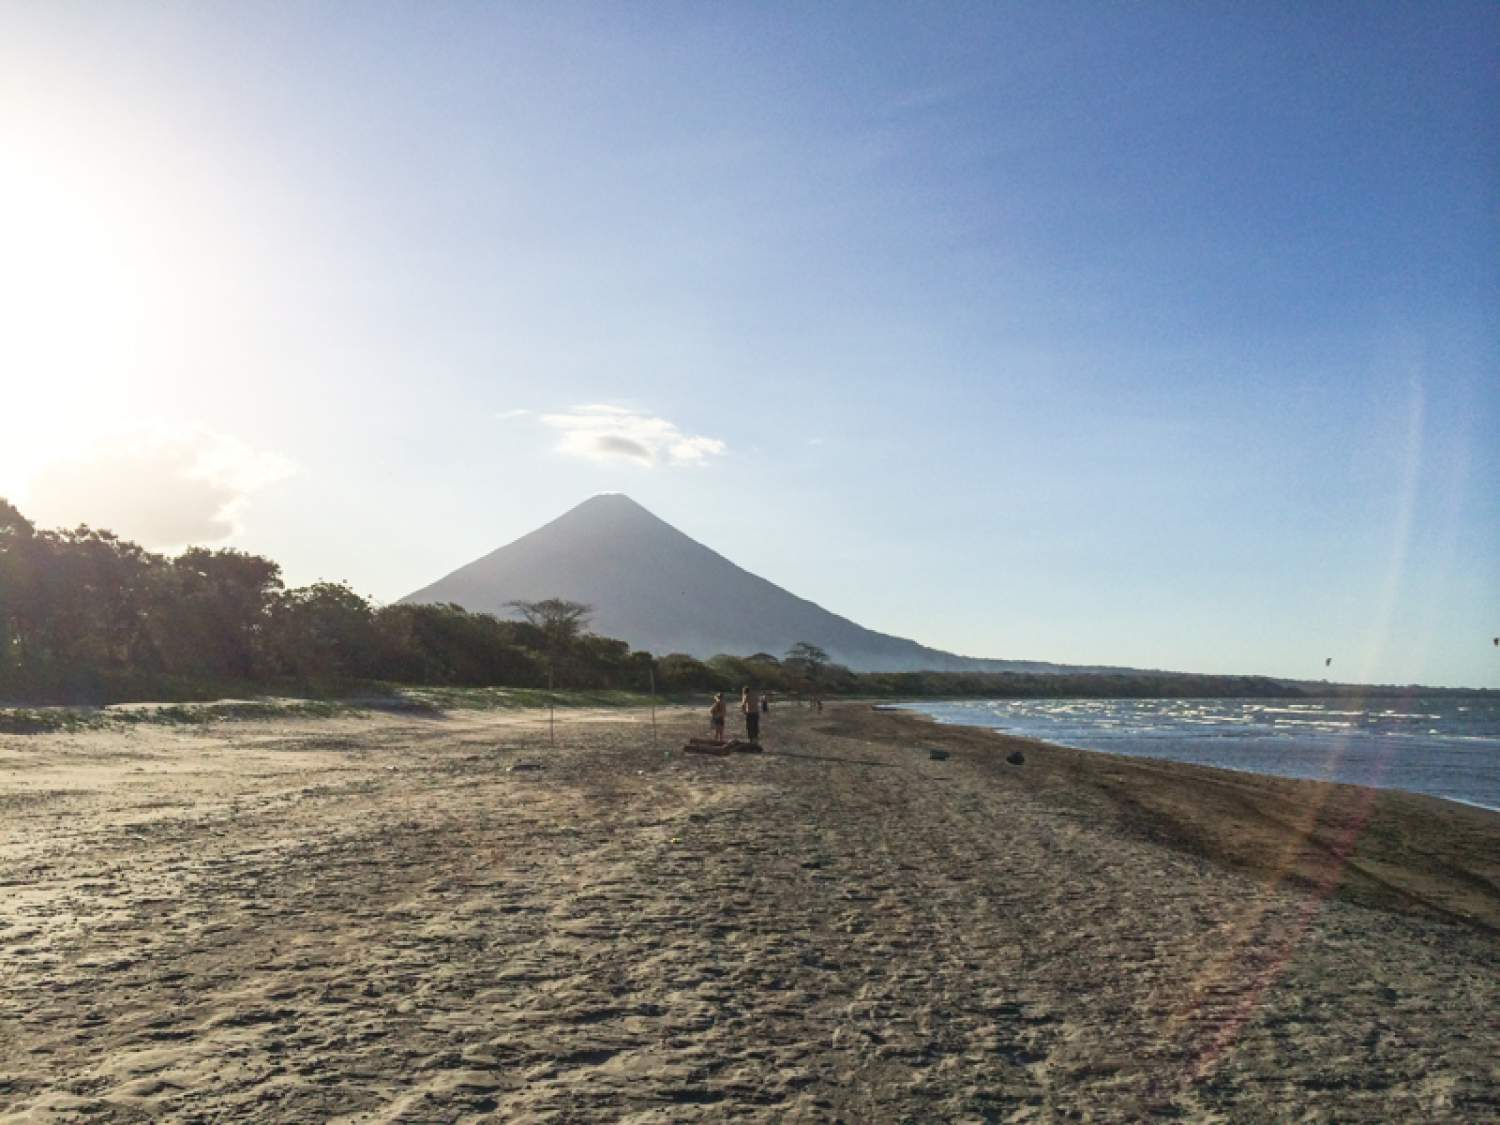 View of the volcano from the beach on Ometepe Island, Nicaragua